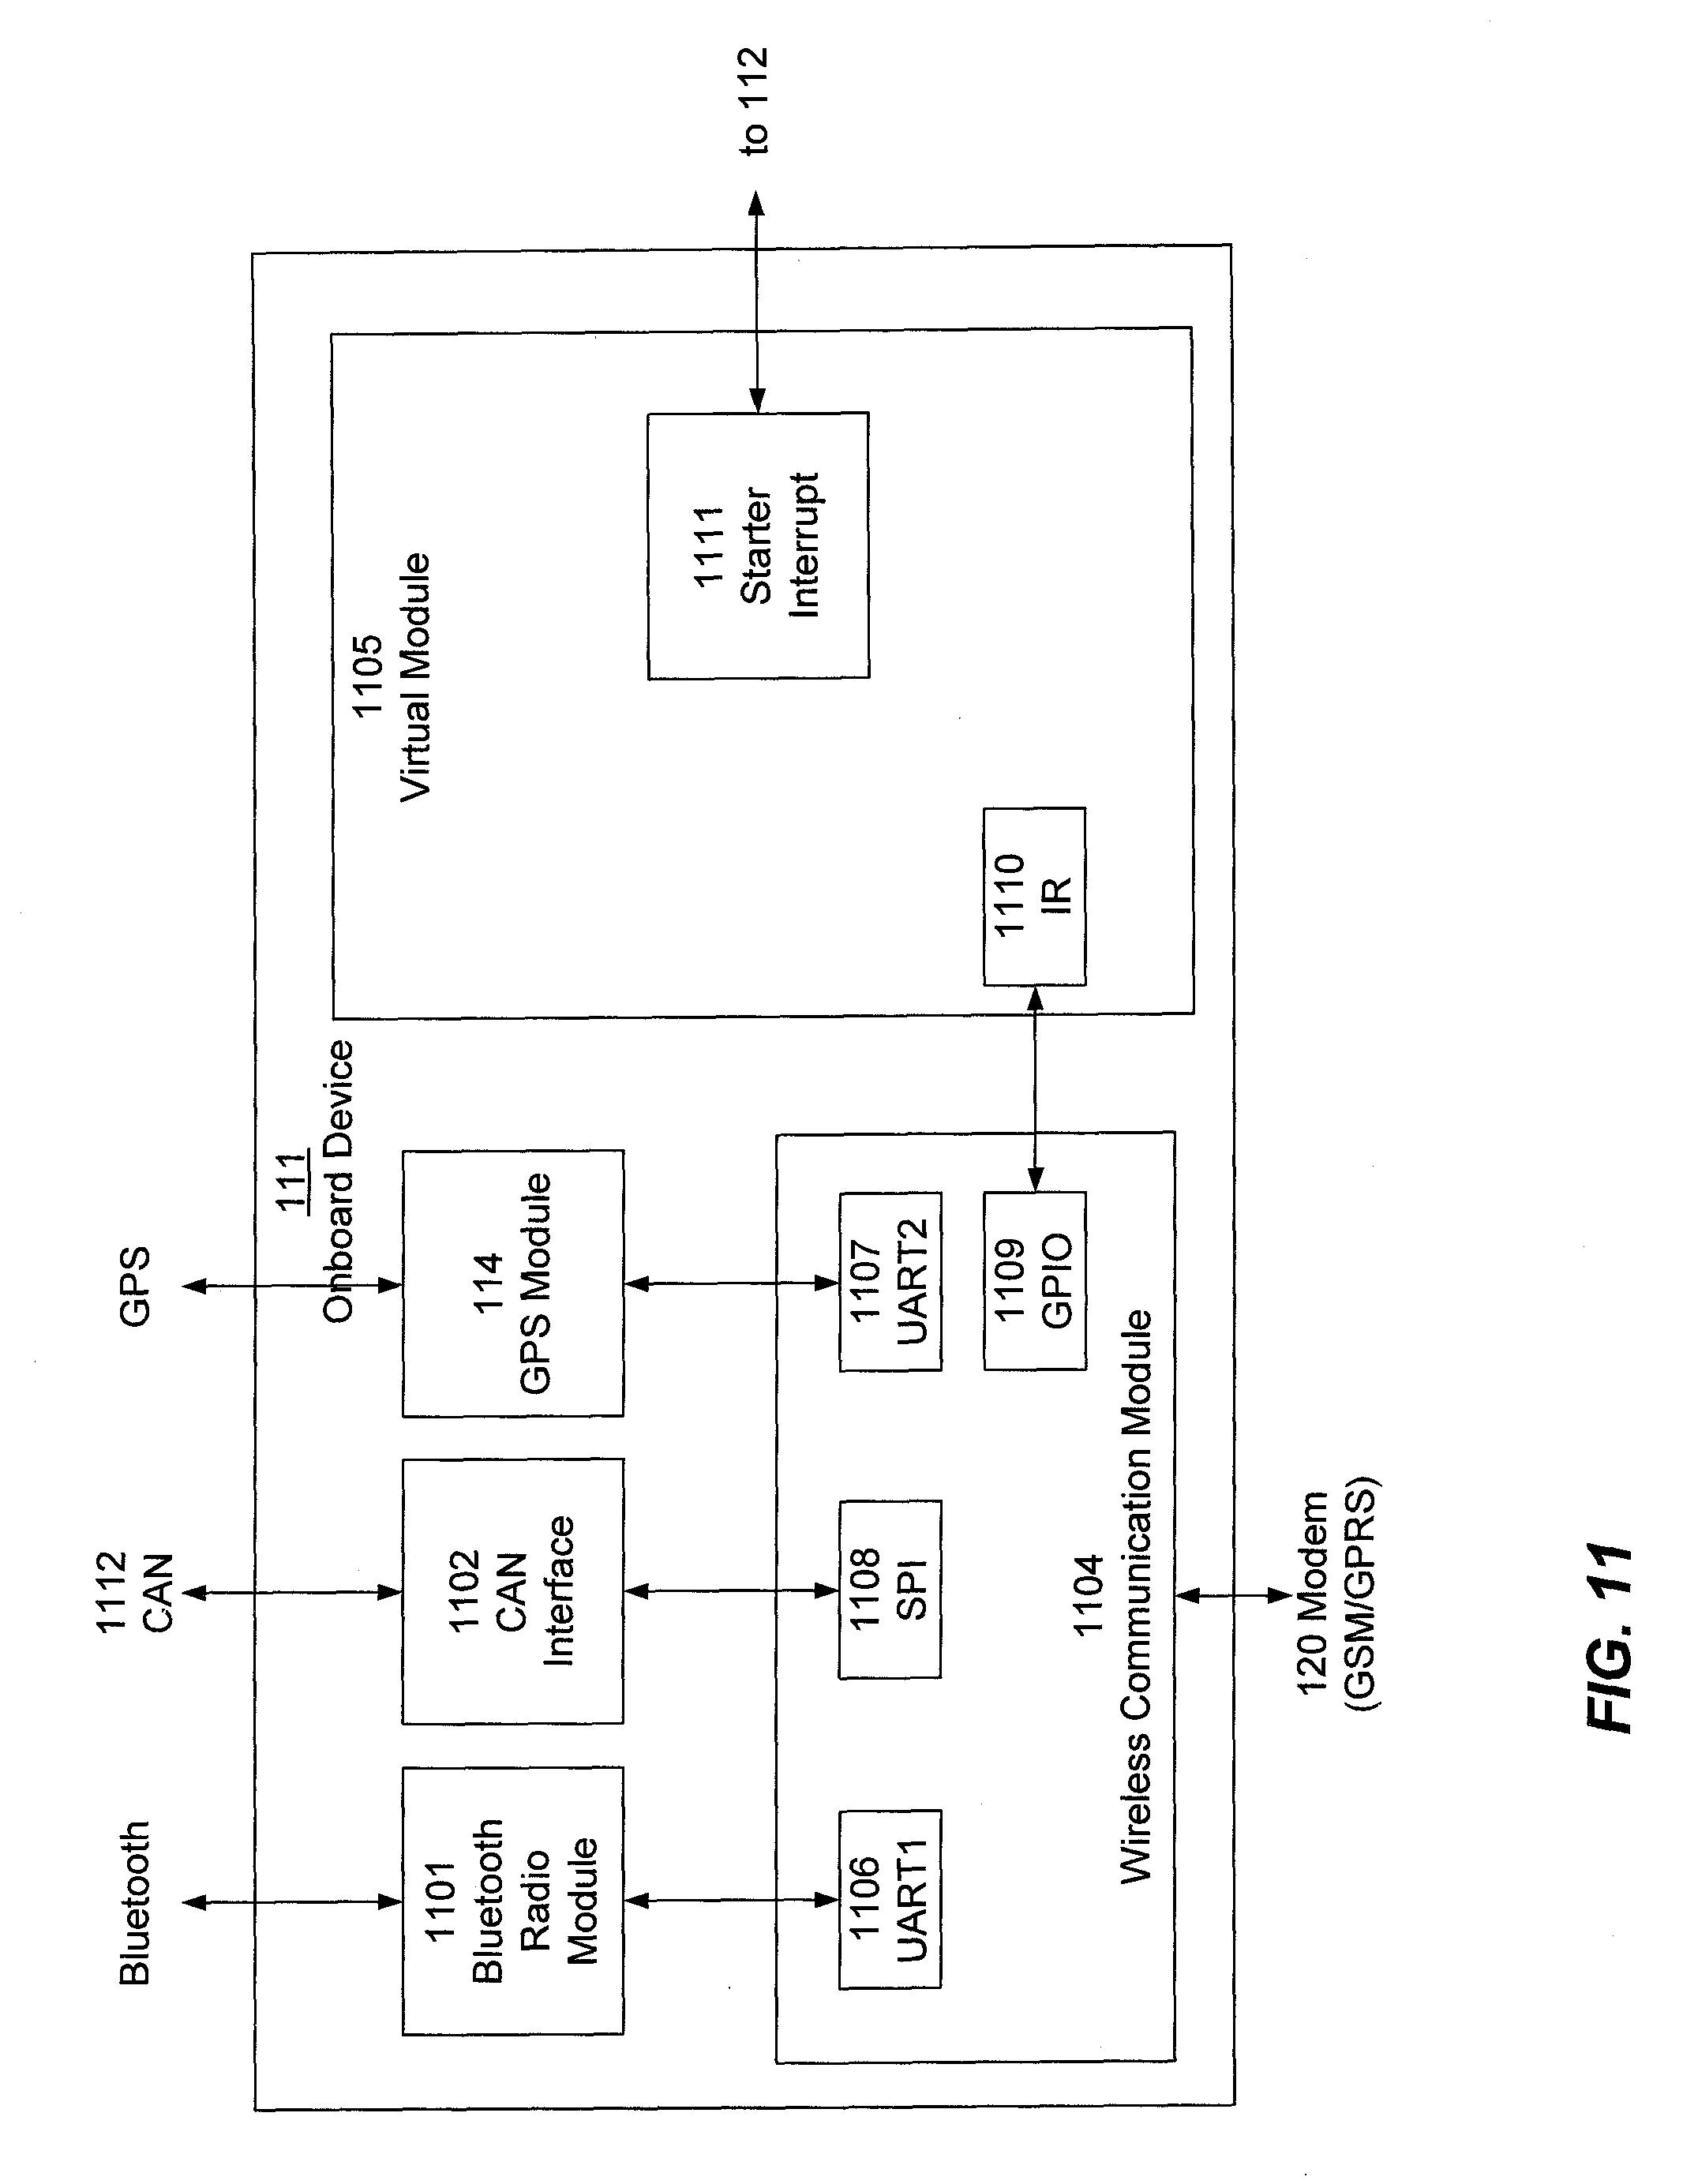 passtime pte 2 wiring diagram Download-Fresh Passtime Gps Wiring Diagram 83 In Chevy Starter With And 17-q